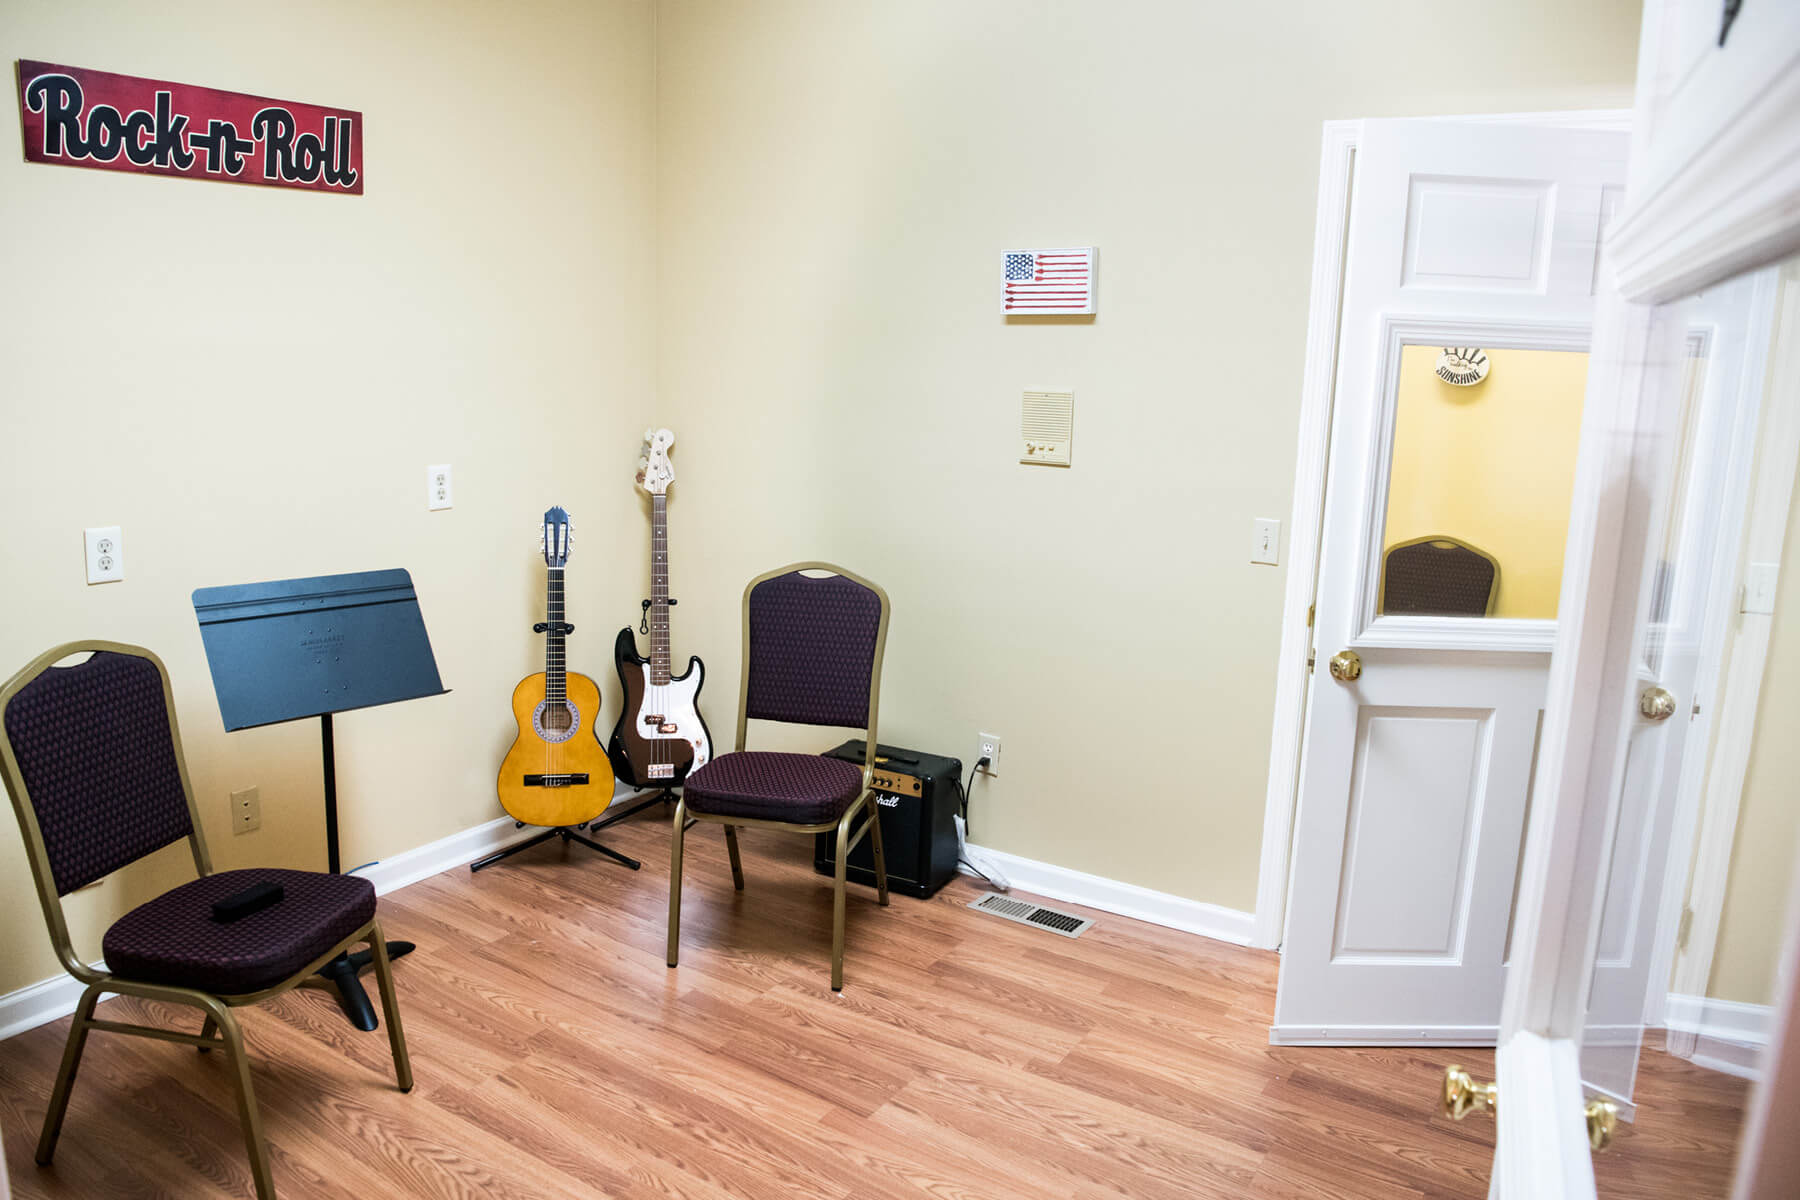 Irmo Music Academy Guitar lesson room with Rock n Roll Banner